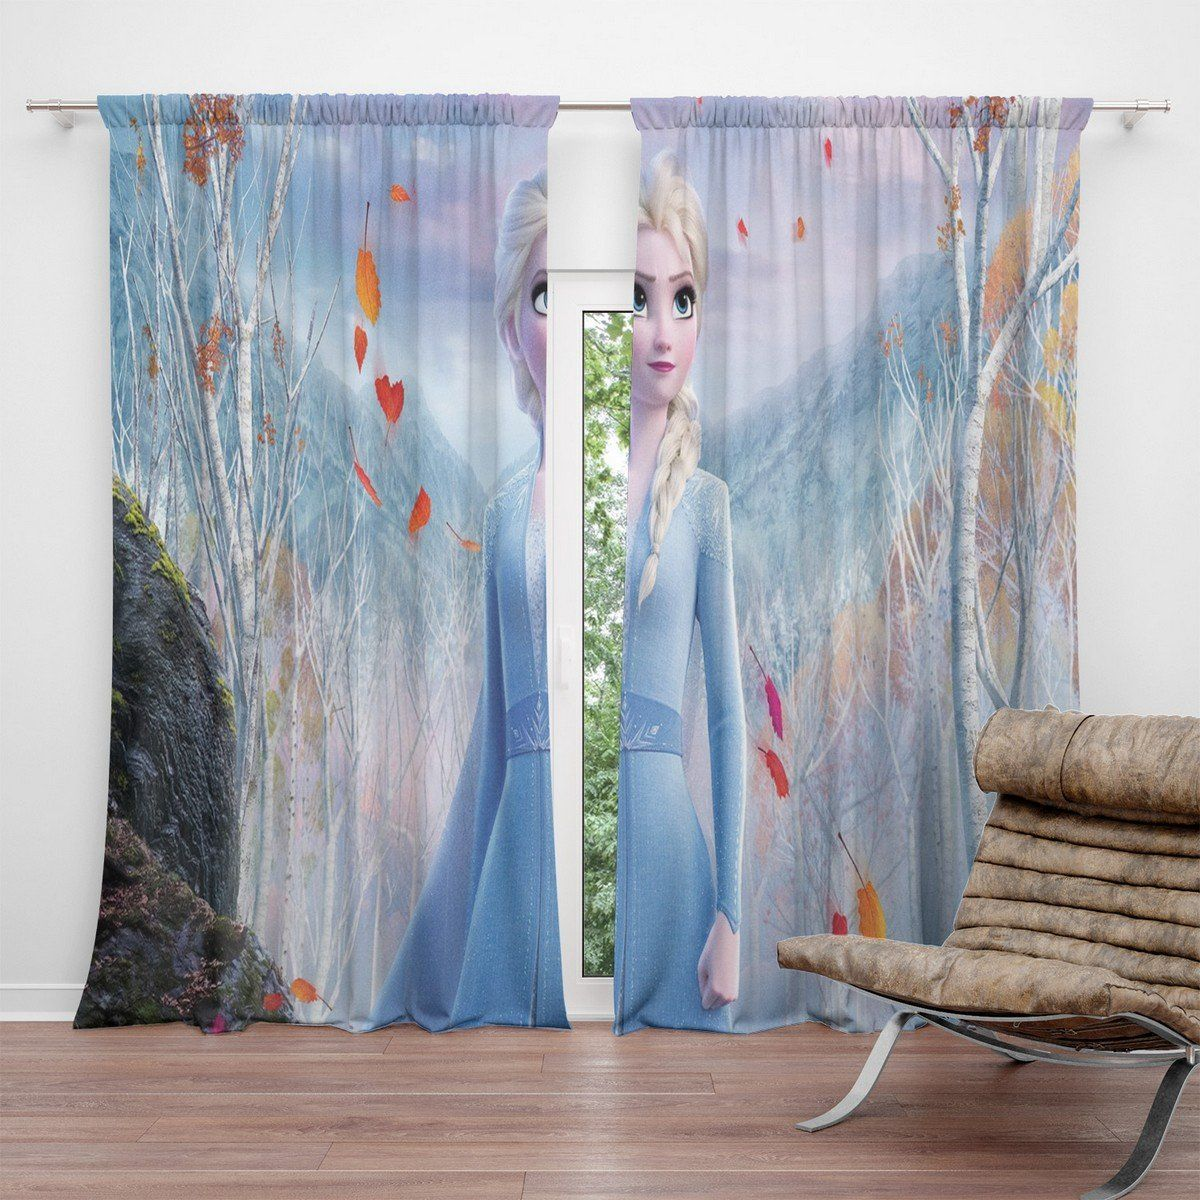 Frozen 2 New Blackout Curtains For Living Room In 2020 Curtains Curtains Living Room Blackout Curtains